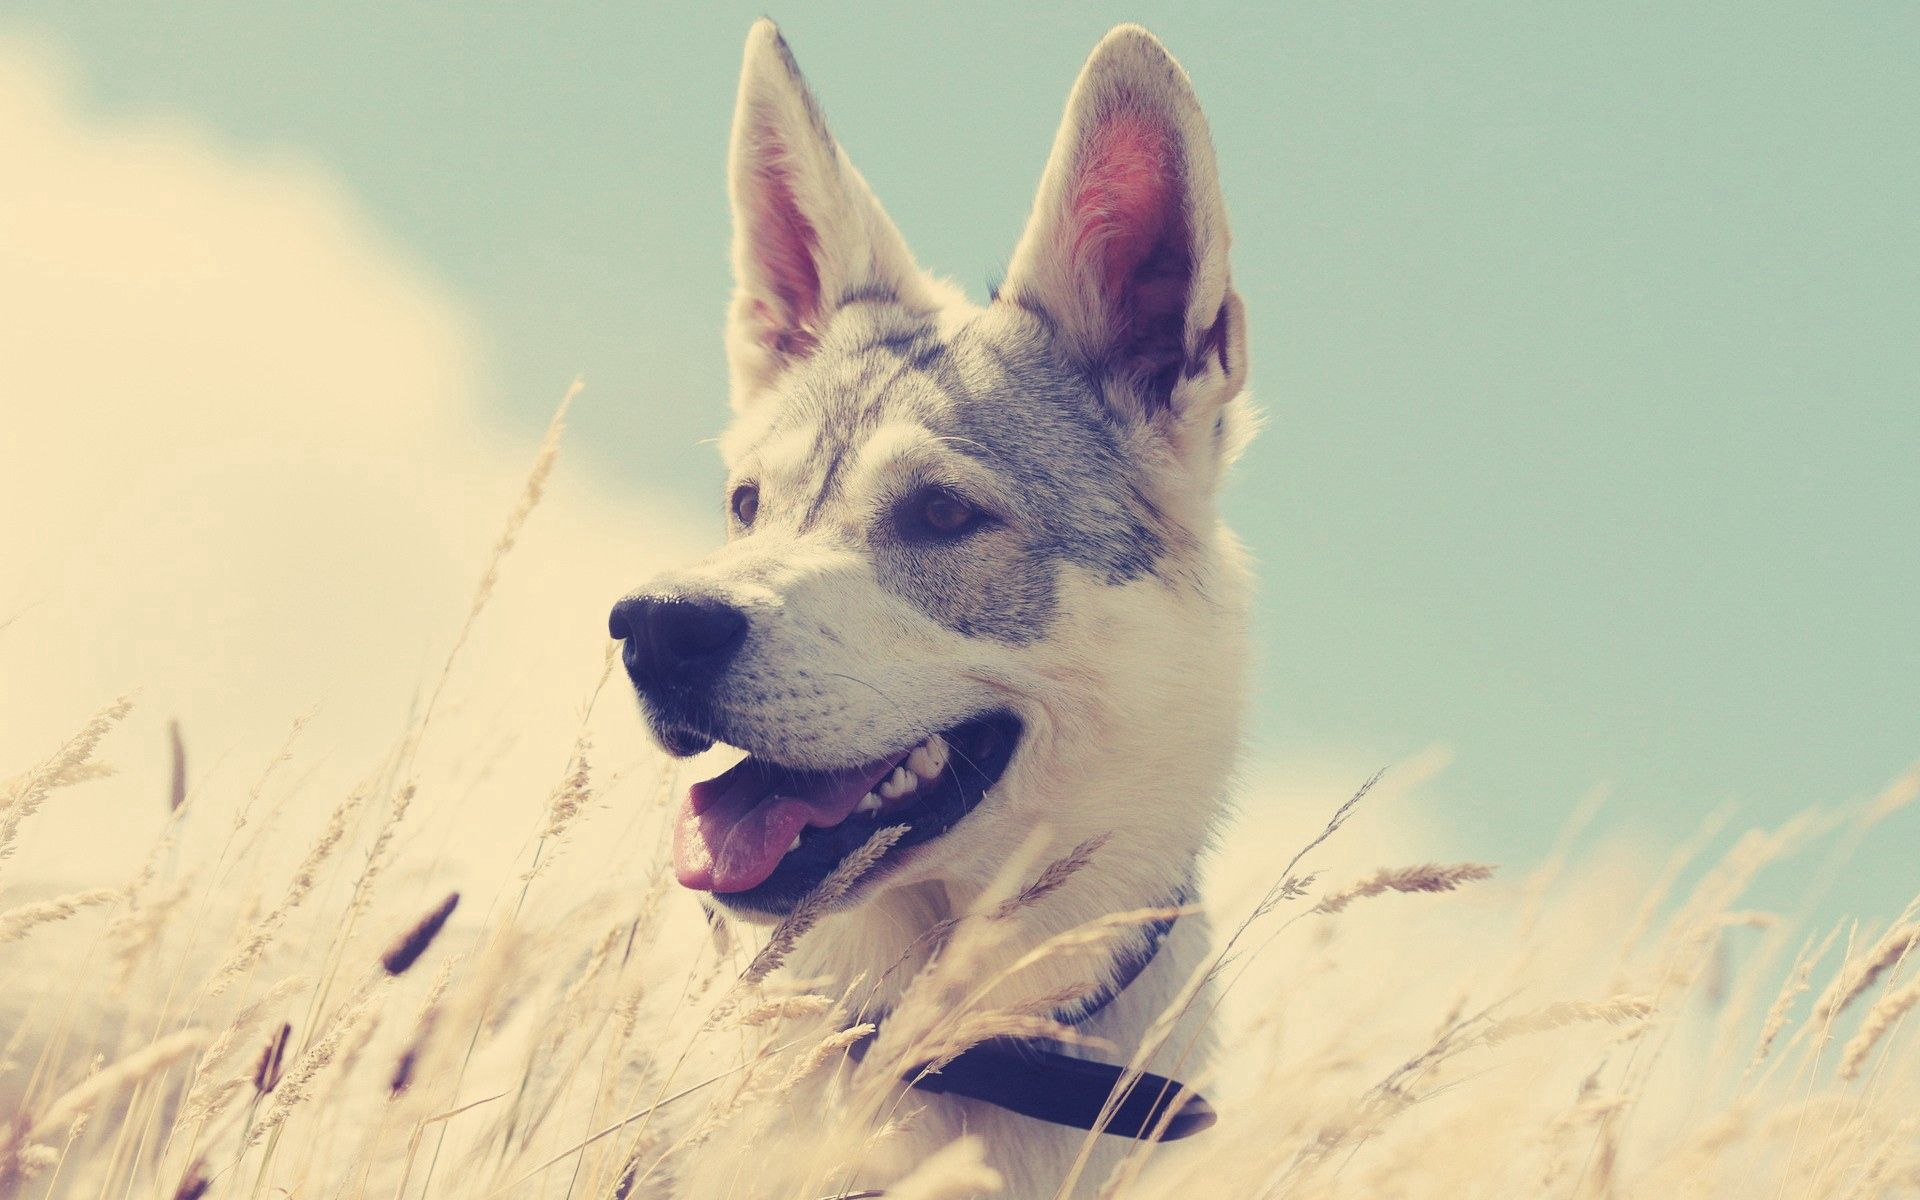 99825 download wallpaper Animals, Dog, Grass, Hunting, Hunt, Run, Running, Enthusiasm screensavers and pictures for free